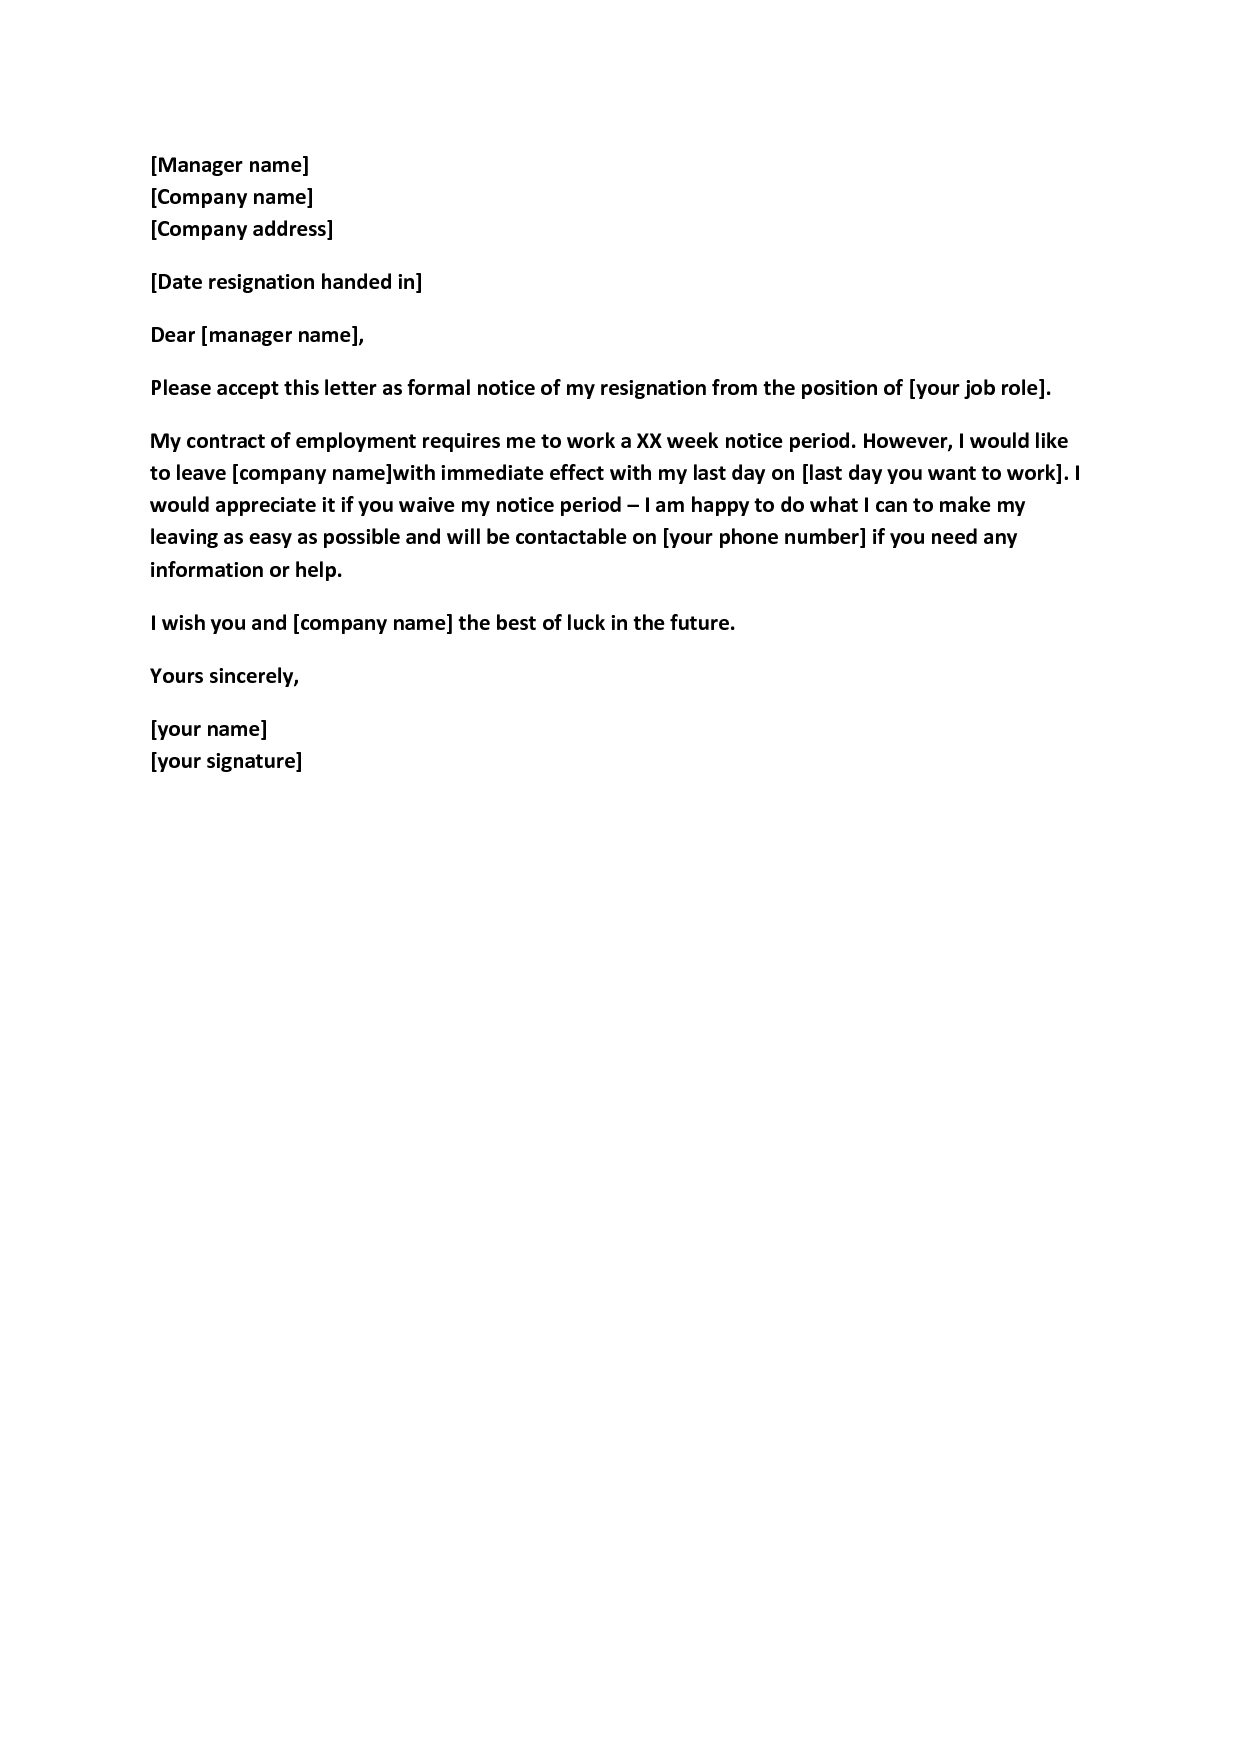 Notice letter template best templateformal letter template business resignation letter without notice resignation letter format sample resignation letter no notice spiritdancerdesigns Choice Image